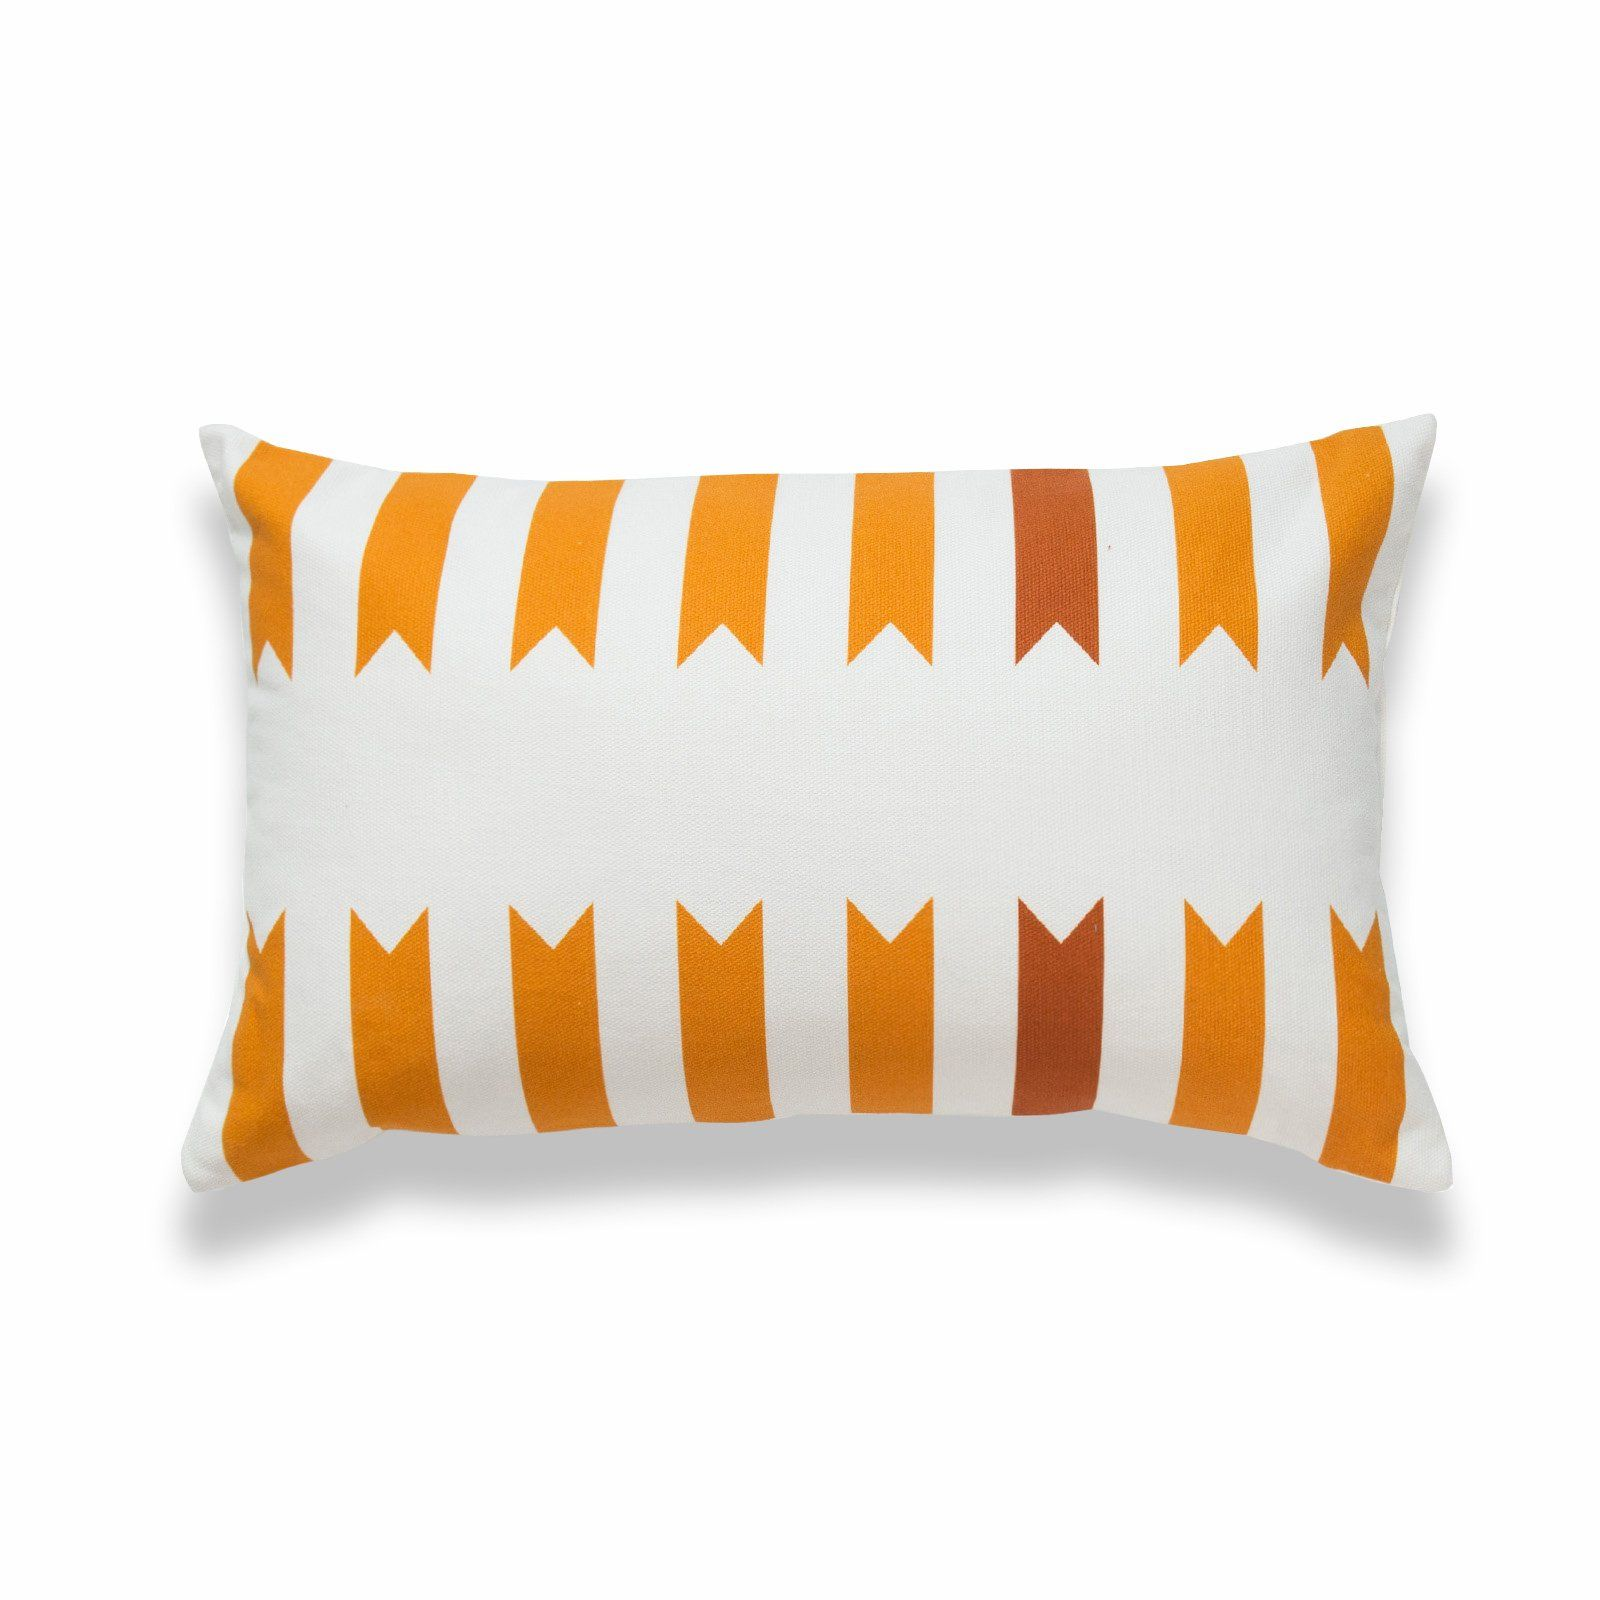 Hofdeco Aztec Print Lumbar Pillow Cover, Geometric, Maple Mustard Yellow, 12x20 #aztec